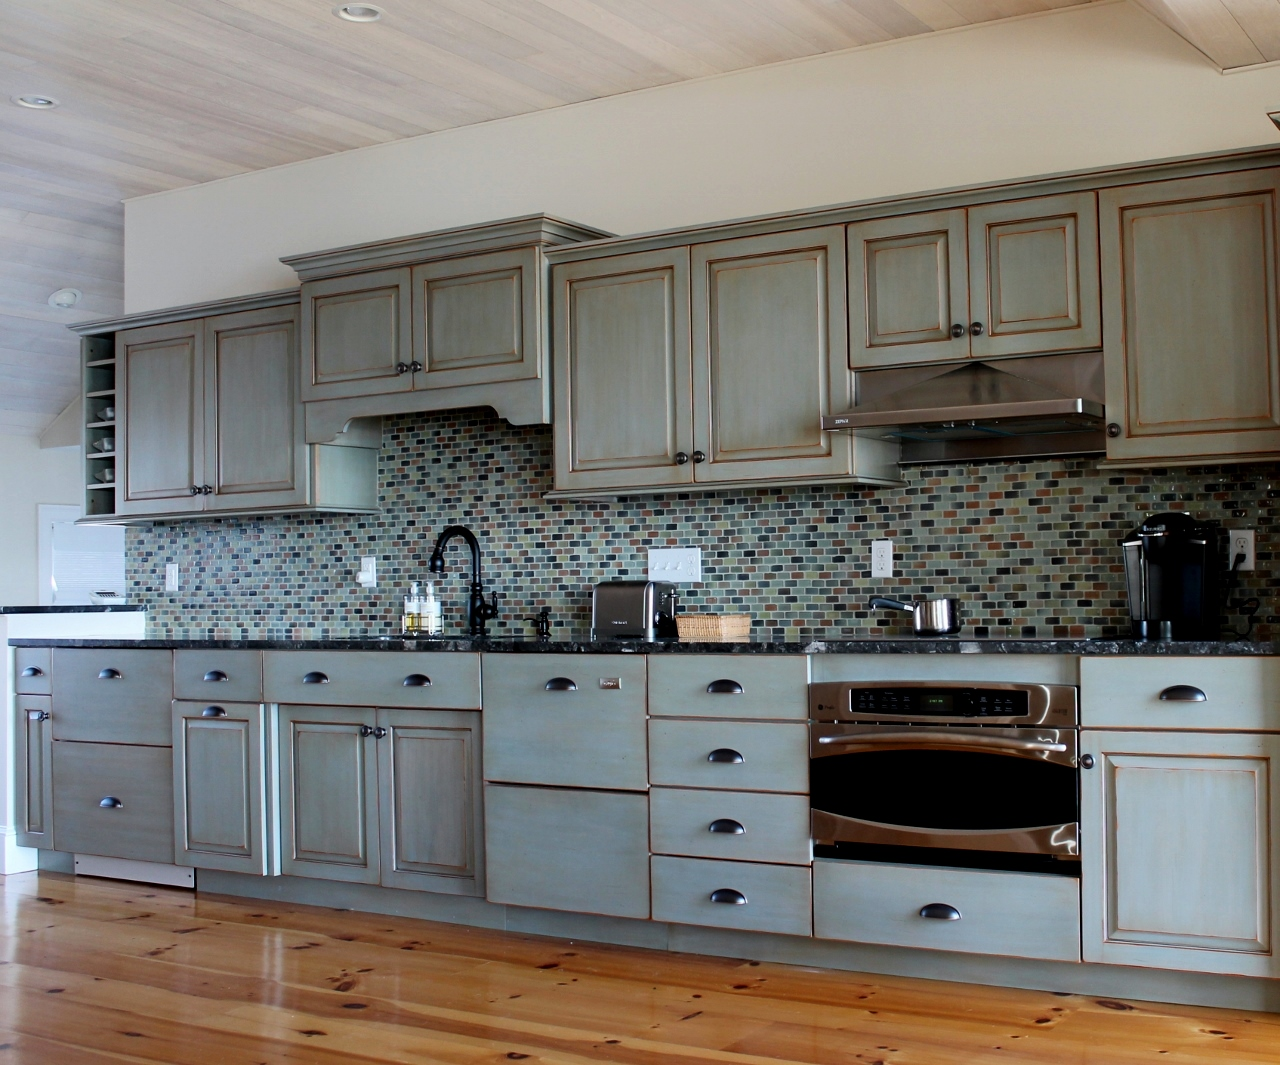 Cape Cod Kitchen Remodeling: Benefits of a Kitchen Revamp ...